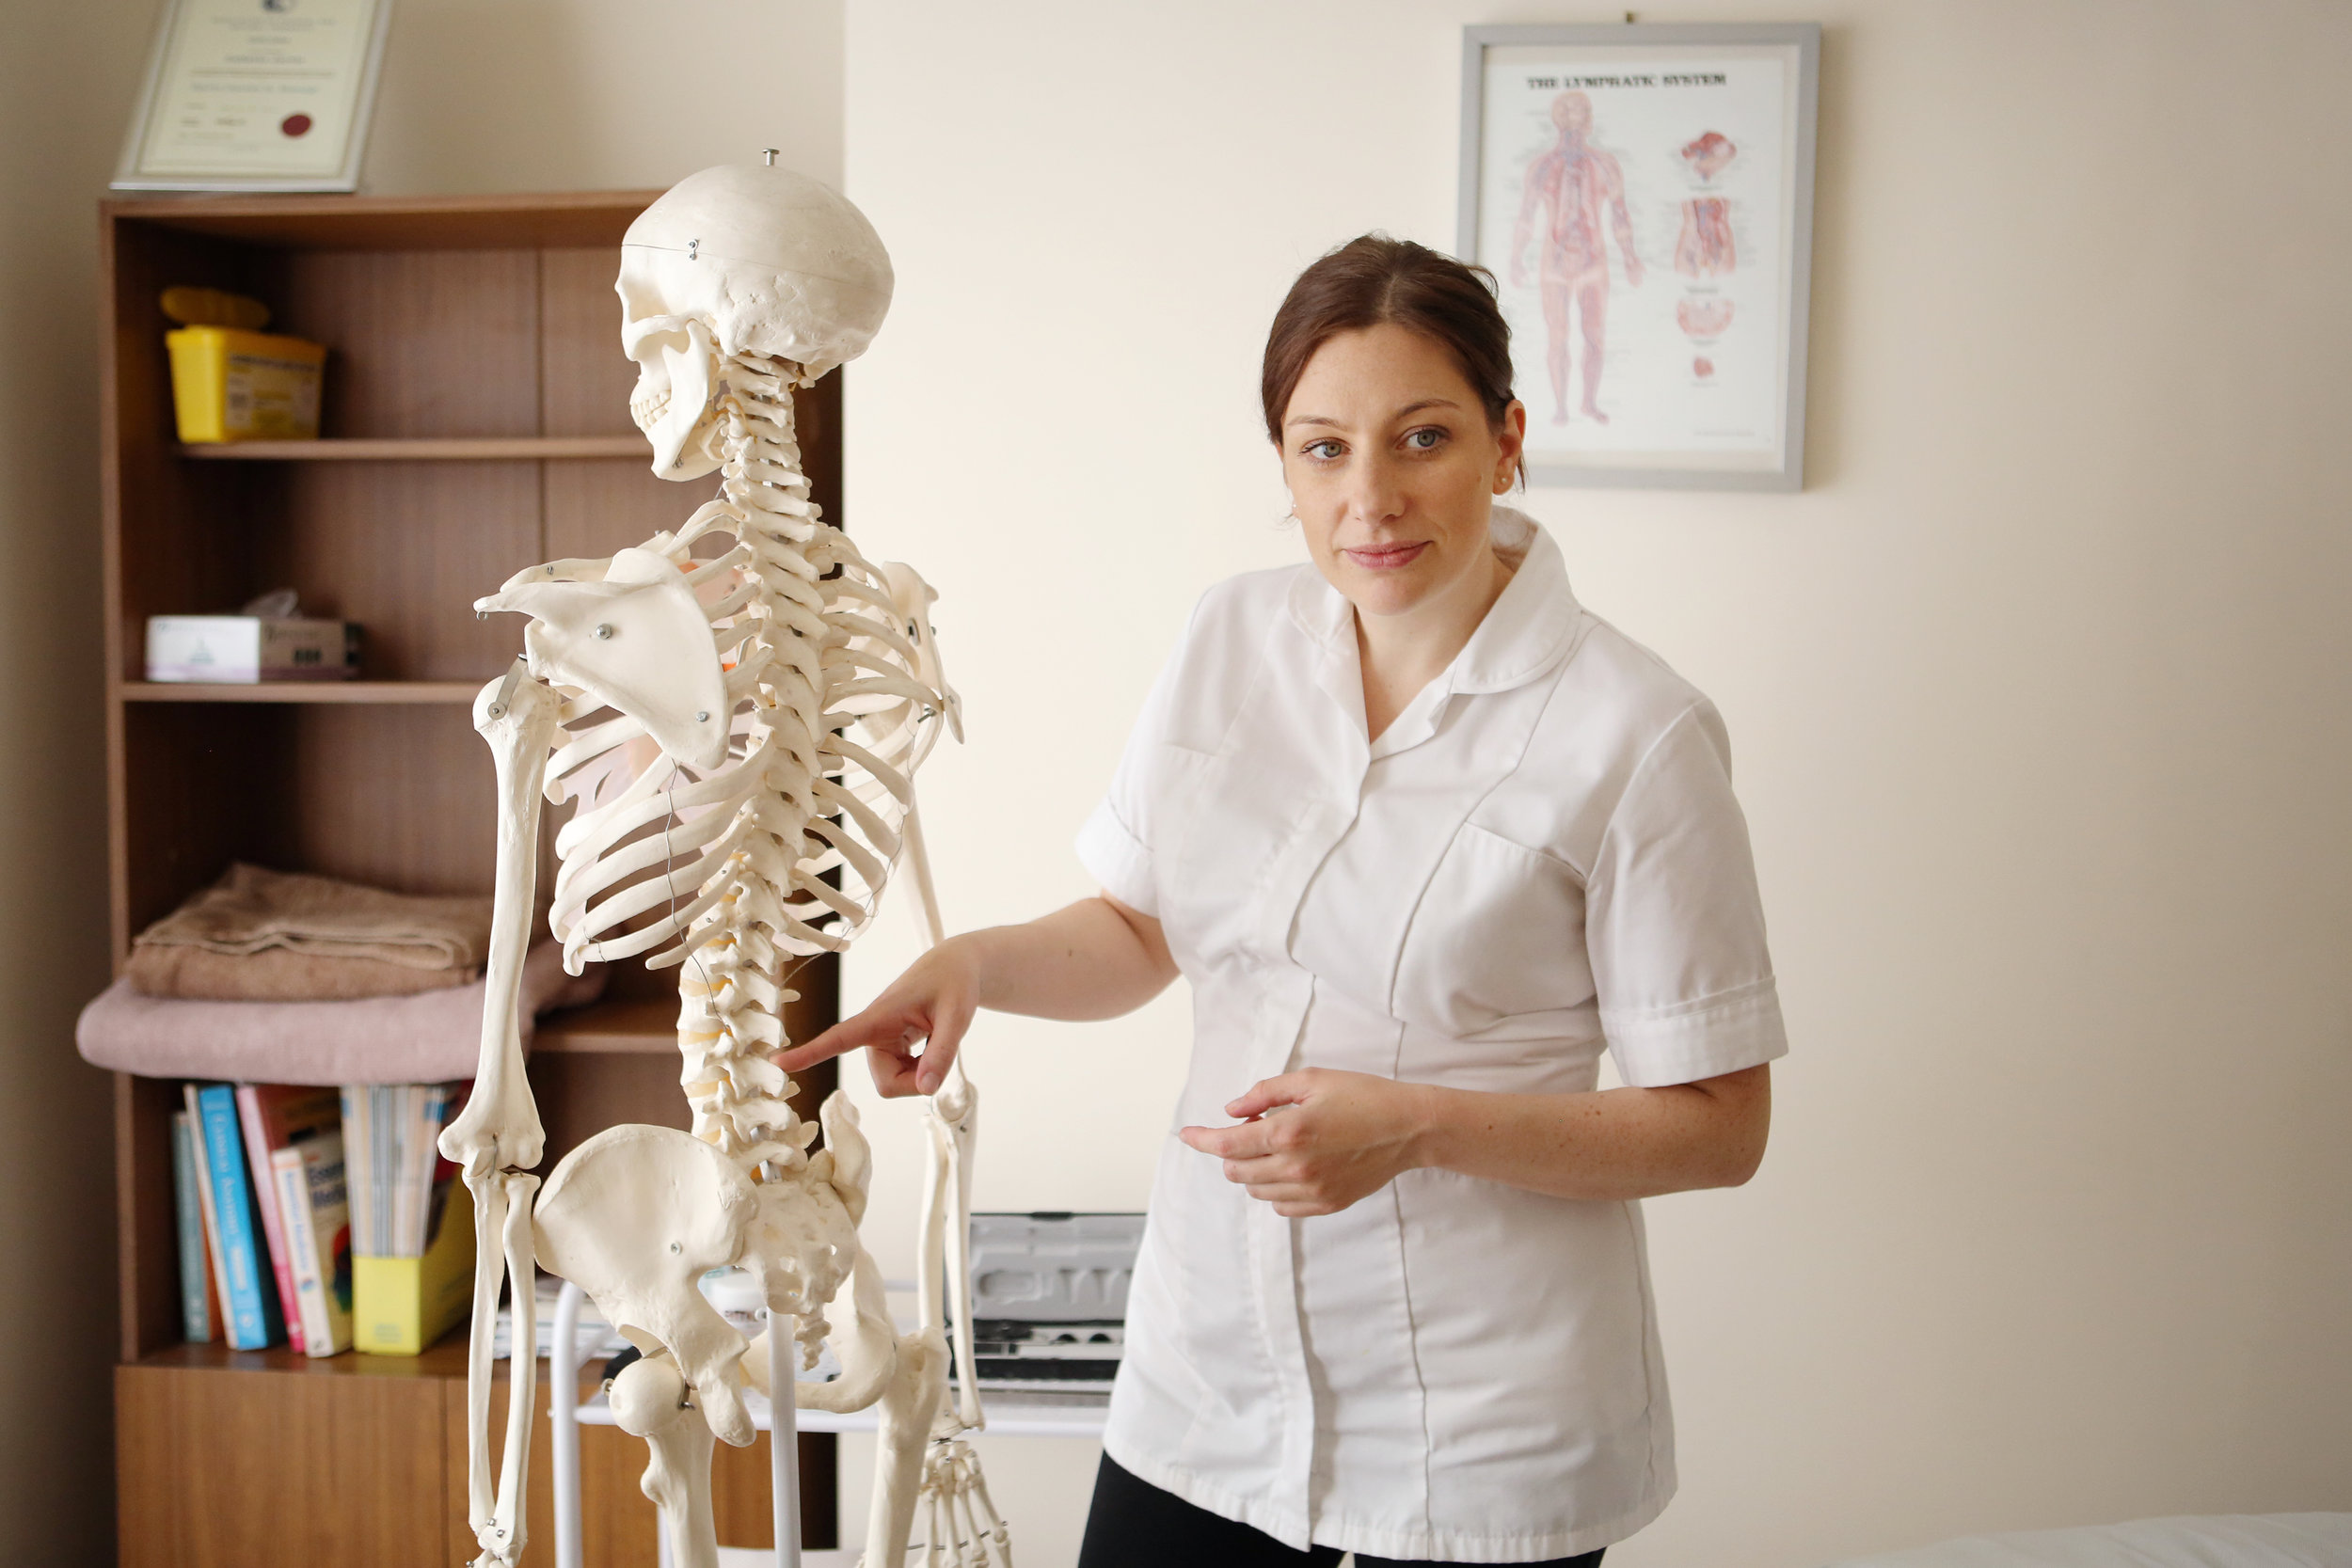 The Root Cause - Your osteopath will take your whole body into consideration when making a diagnosis.This doesn't mean ignoring your problem area; your muscles, joints, tendons, ligaments etc are all interconnected, so your osteopath will consider what is causing your pain and where else in the body may be affecting, or affected by, the problem area.This approach means osteopaths will treat your initial pain but will also look to treat the root cause of your pain. This consideration, searching for the root cause of the problem, sets osteopathy apart and underlines our work to achieve long-term pain relief.